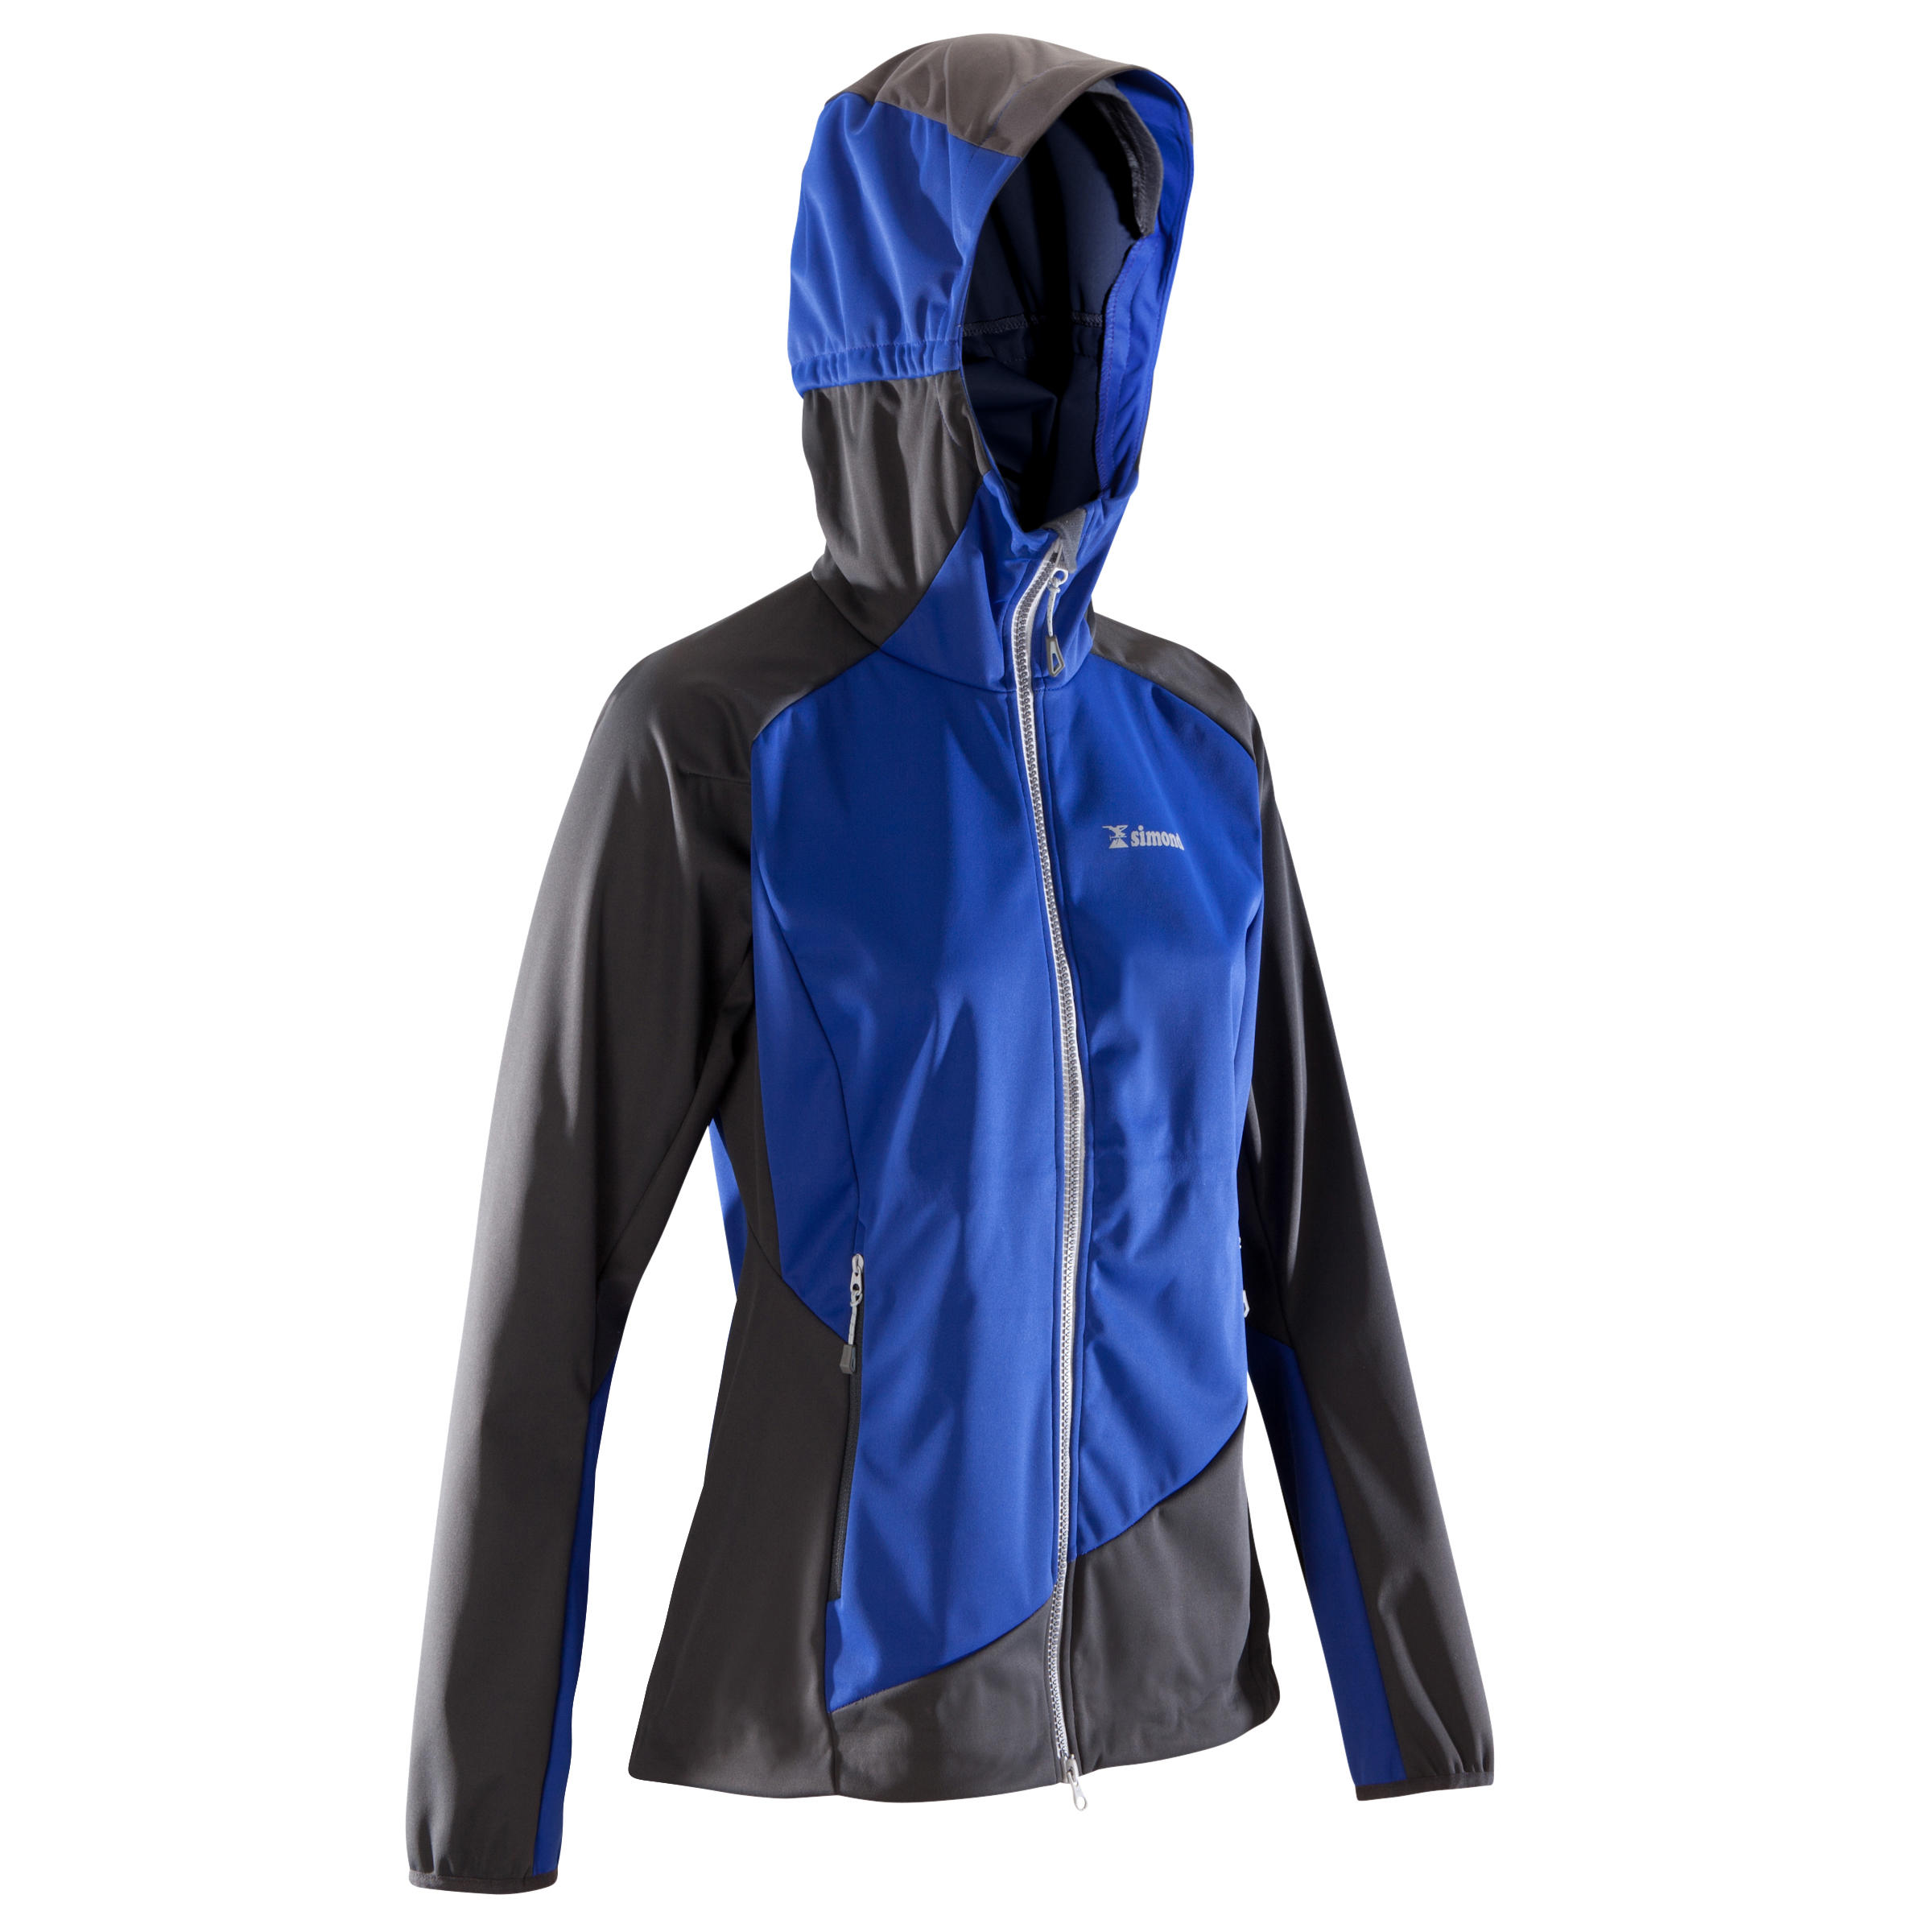 Women's Mountaineering Light Softshell Jacket - Dark Indigo & Grey